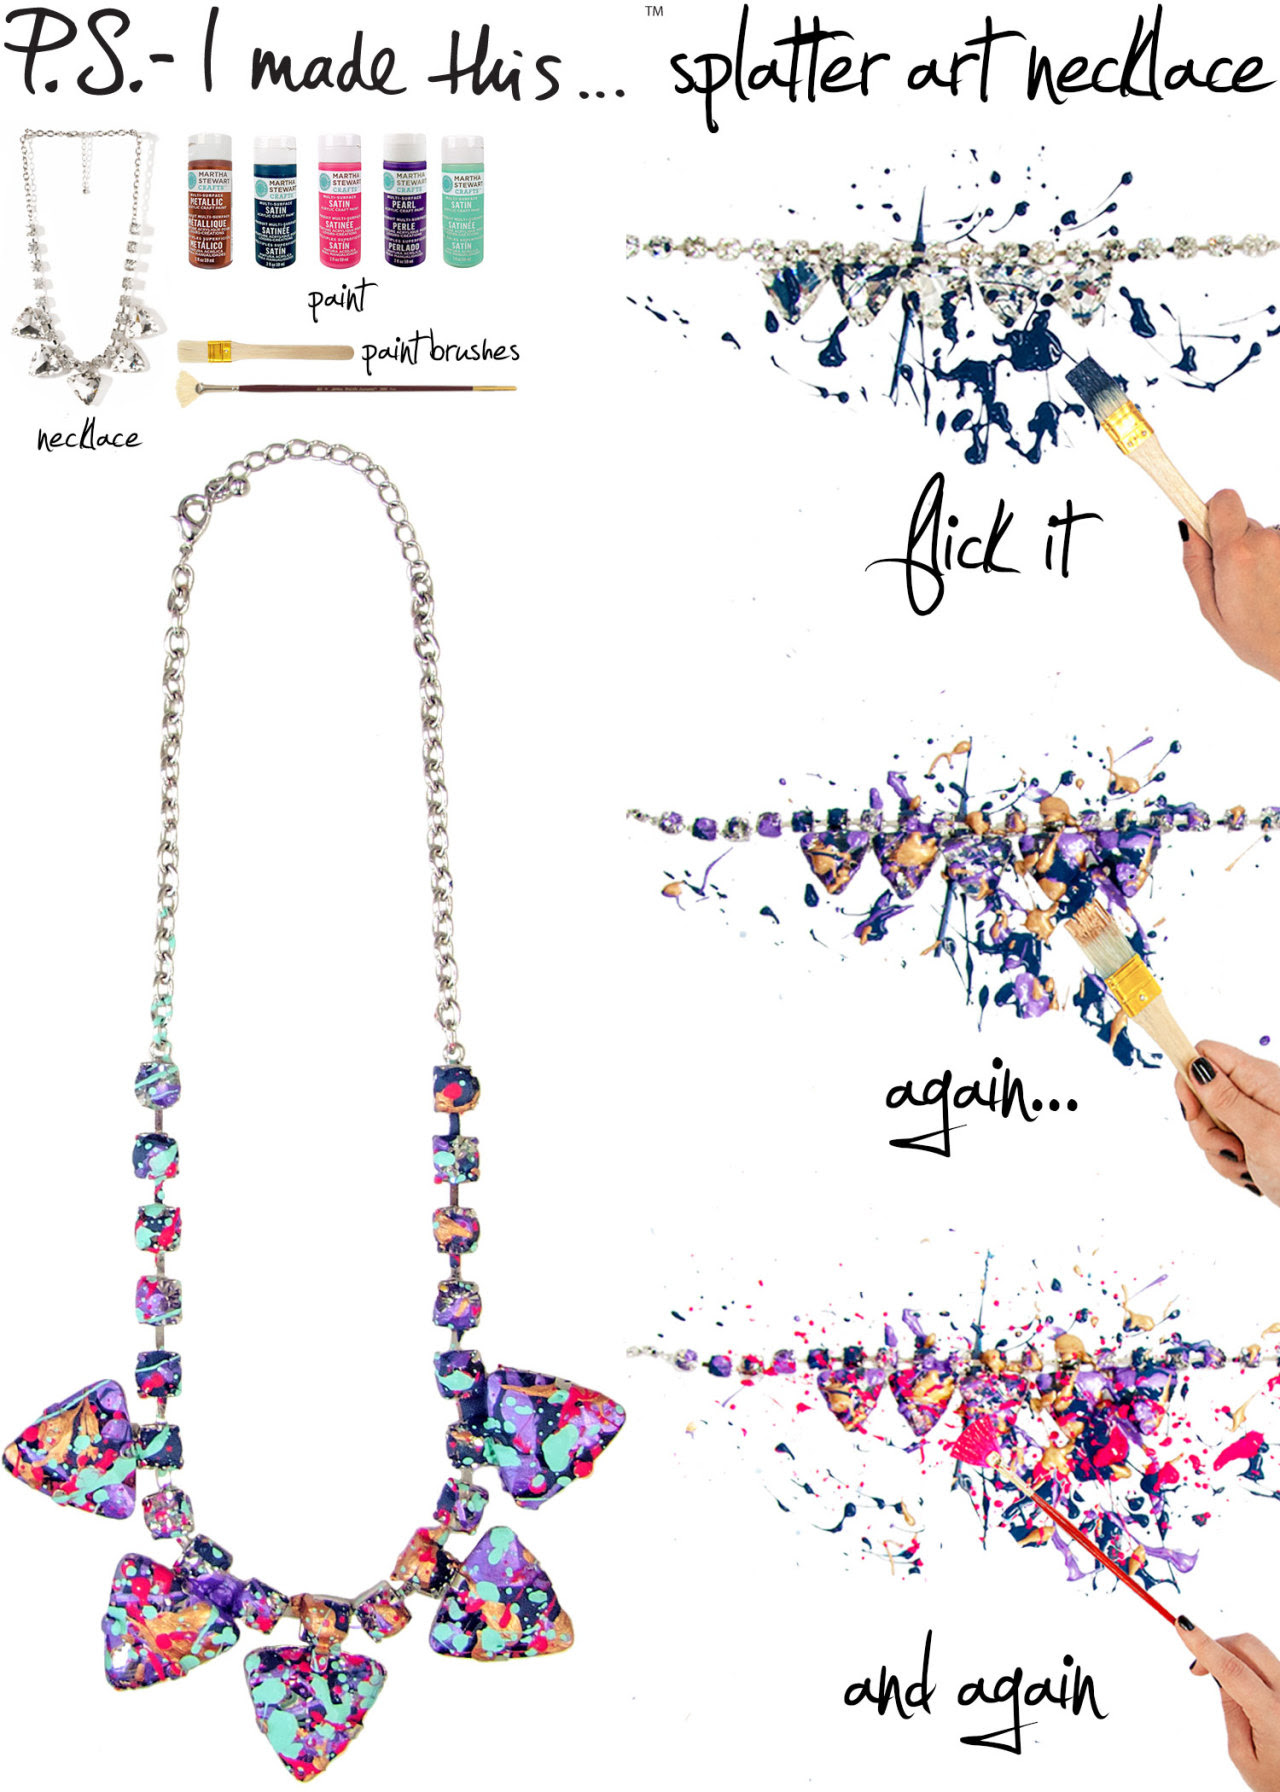 Whether you're a Jackson Pollock aficionado or couldn't get enough of Spin Art as a kid, there's no denying the positive impact of colorful and energetic splatters of paint. Add an unexpected addition to your outfit with jewelry inspired by designer Tom Binns' splatter-effect Spring 2013 collection. This artistic wow-factor will makes you want to celebrate and paint the town. So bring out your inner DIY expressionist and turn an old accessory into a fresh work of art!  To create: Select an assortment of paint colors. The more colors, the more layers you'll have. To keep a tidy space, use newspaper or a drop cloth. Pour a dollop of paint onto a protective surface and dab a paint brush; flick onto a statement necklace, we opted for a chunky rhinestone version. Take your next color and repeat. Try different brushes for an array of speckled effects. Once finished, let completely dry before wearing.